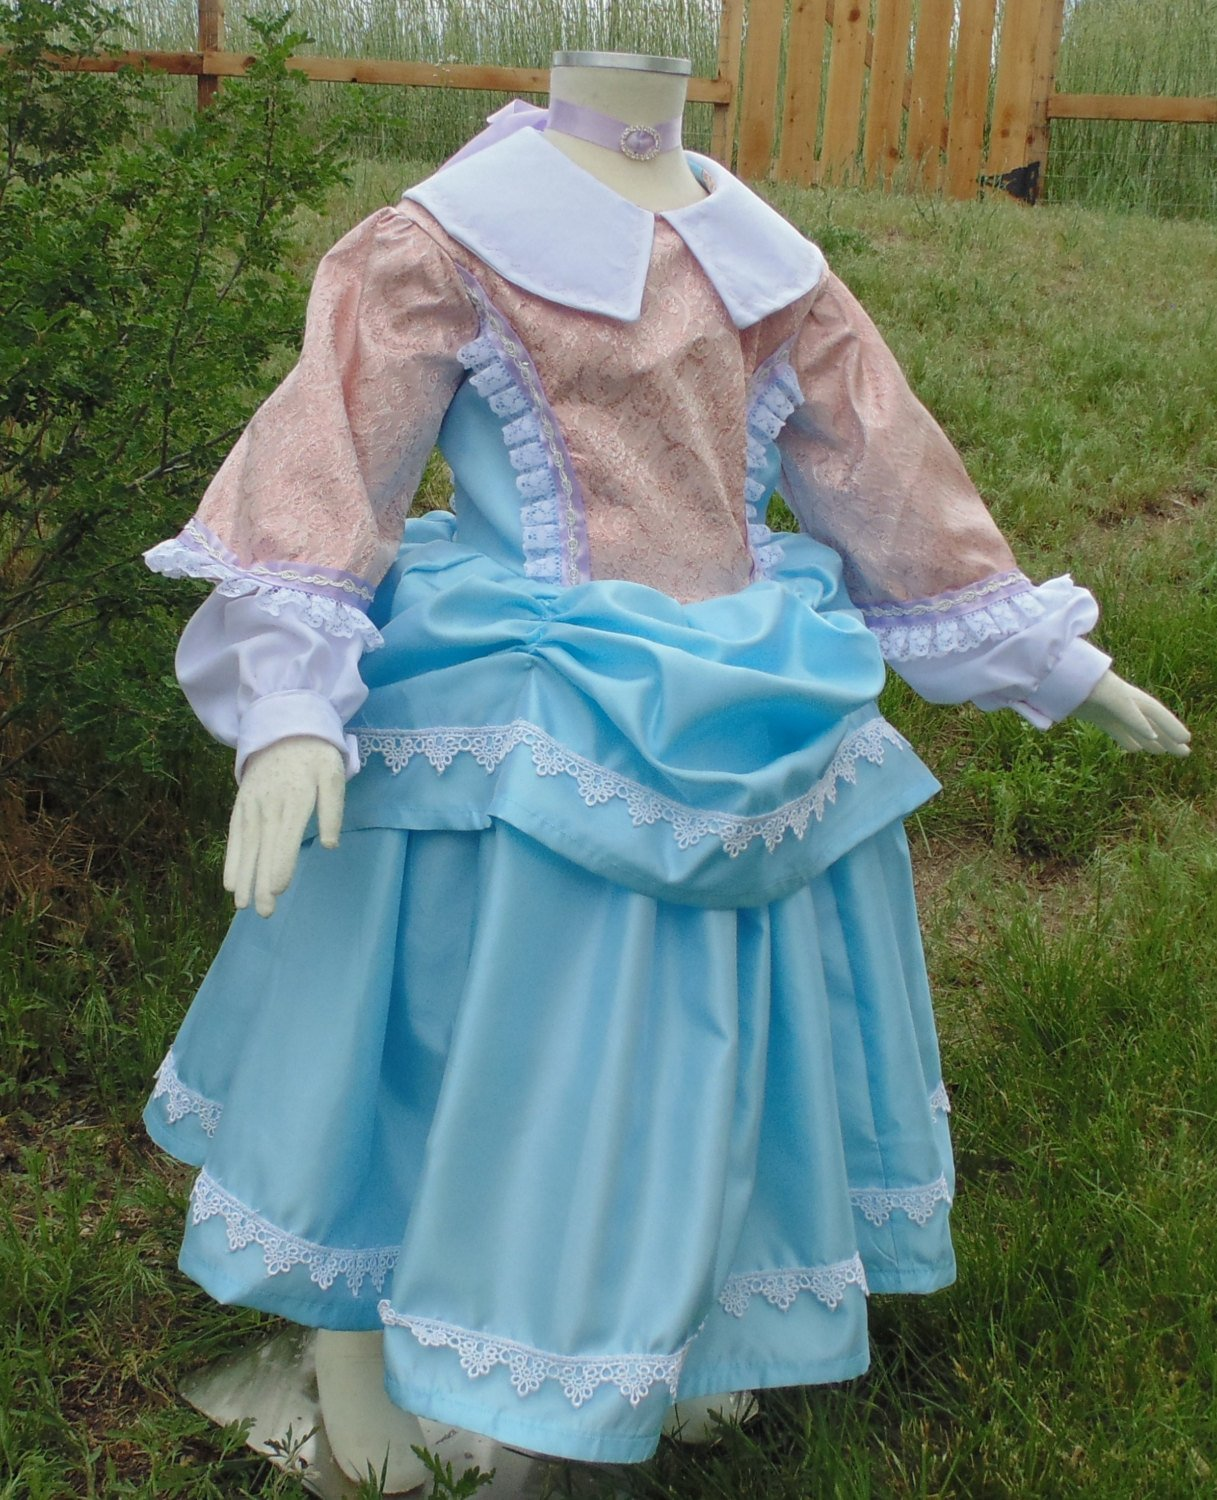 Girls 4-5 Pretty Historical party frock with petticoat, pantalets, and choker